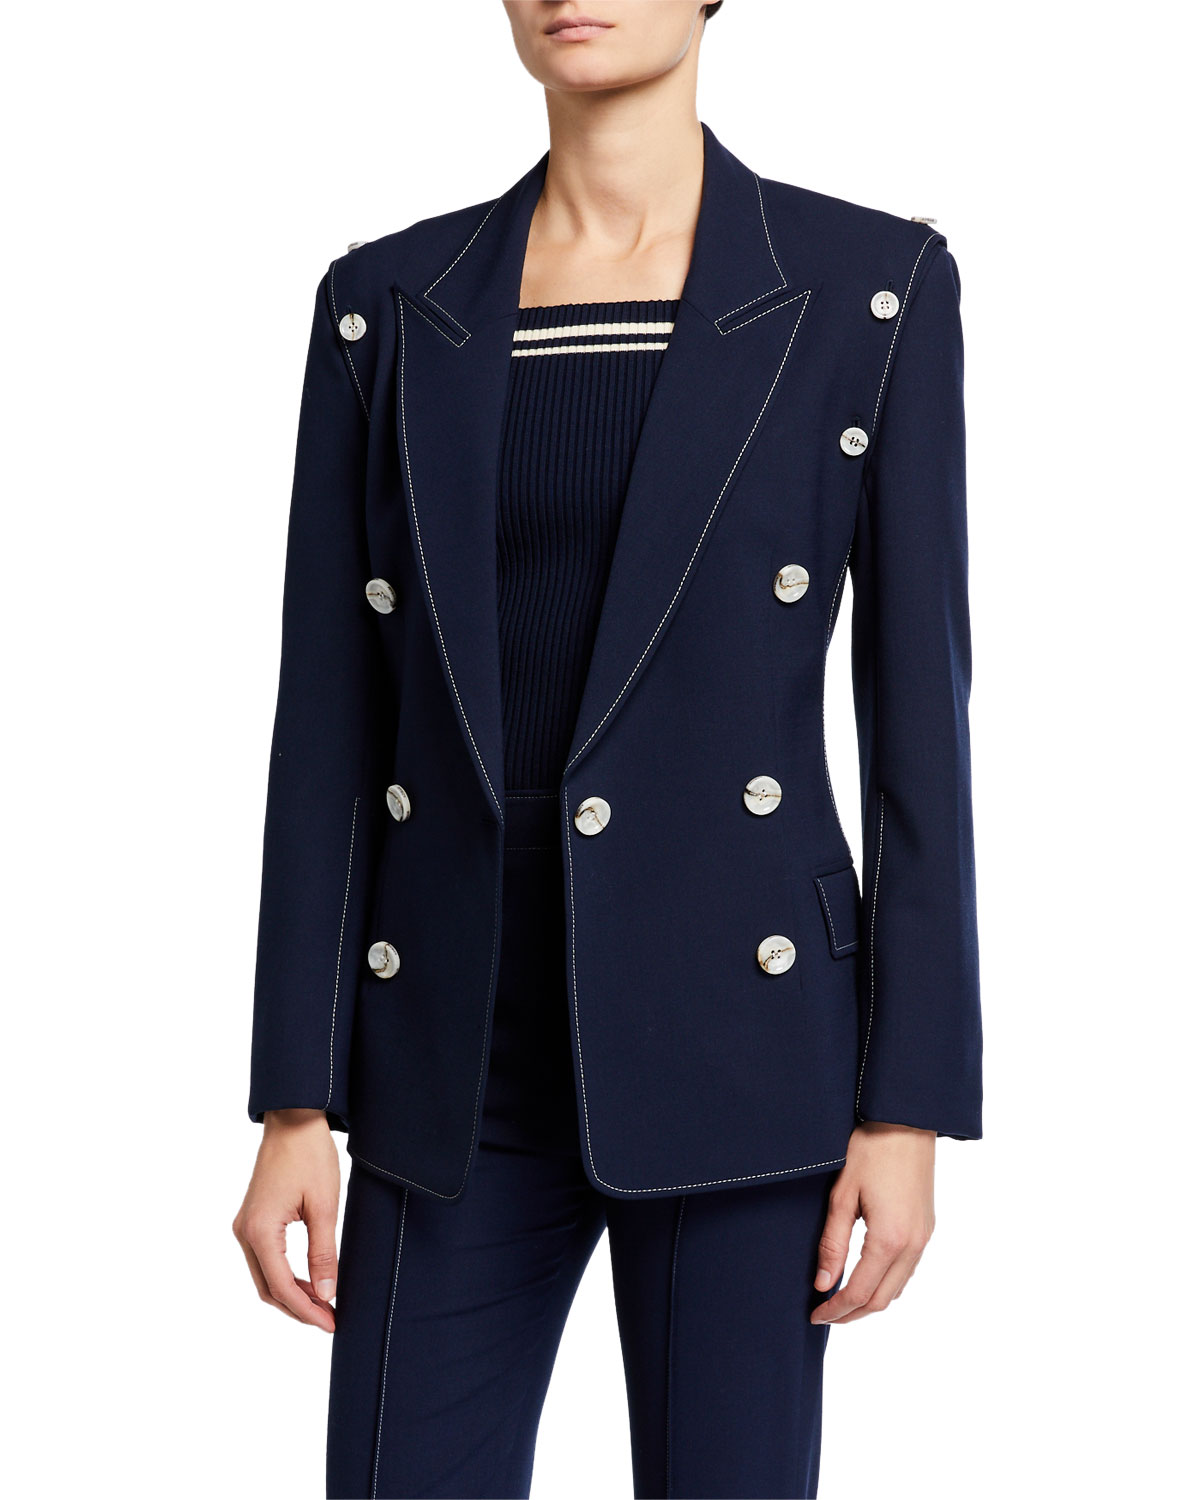 ADEAM Nautical Tailored Jacket